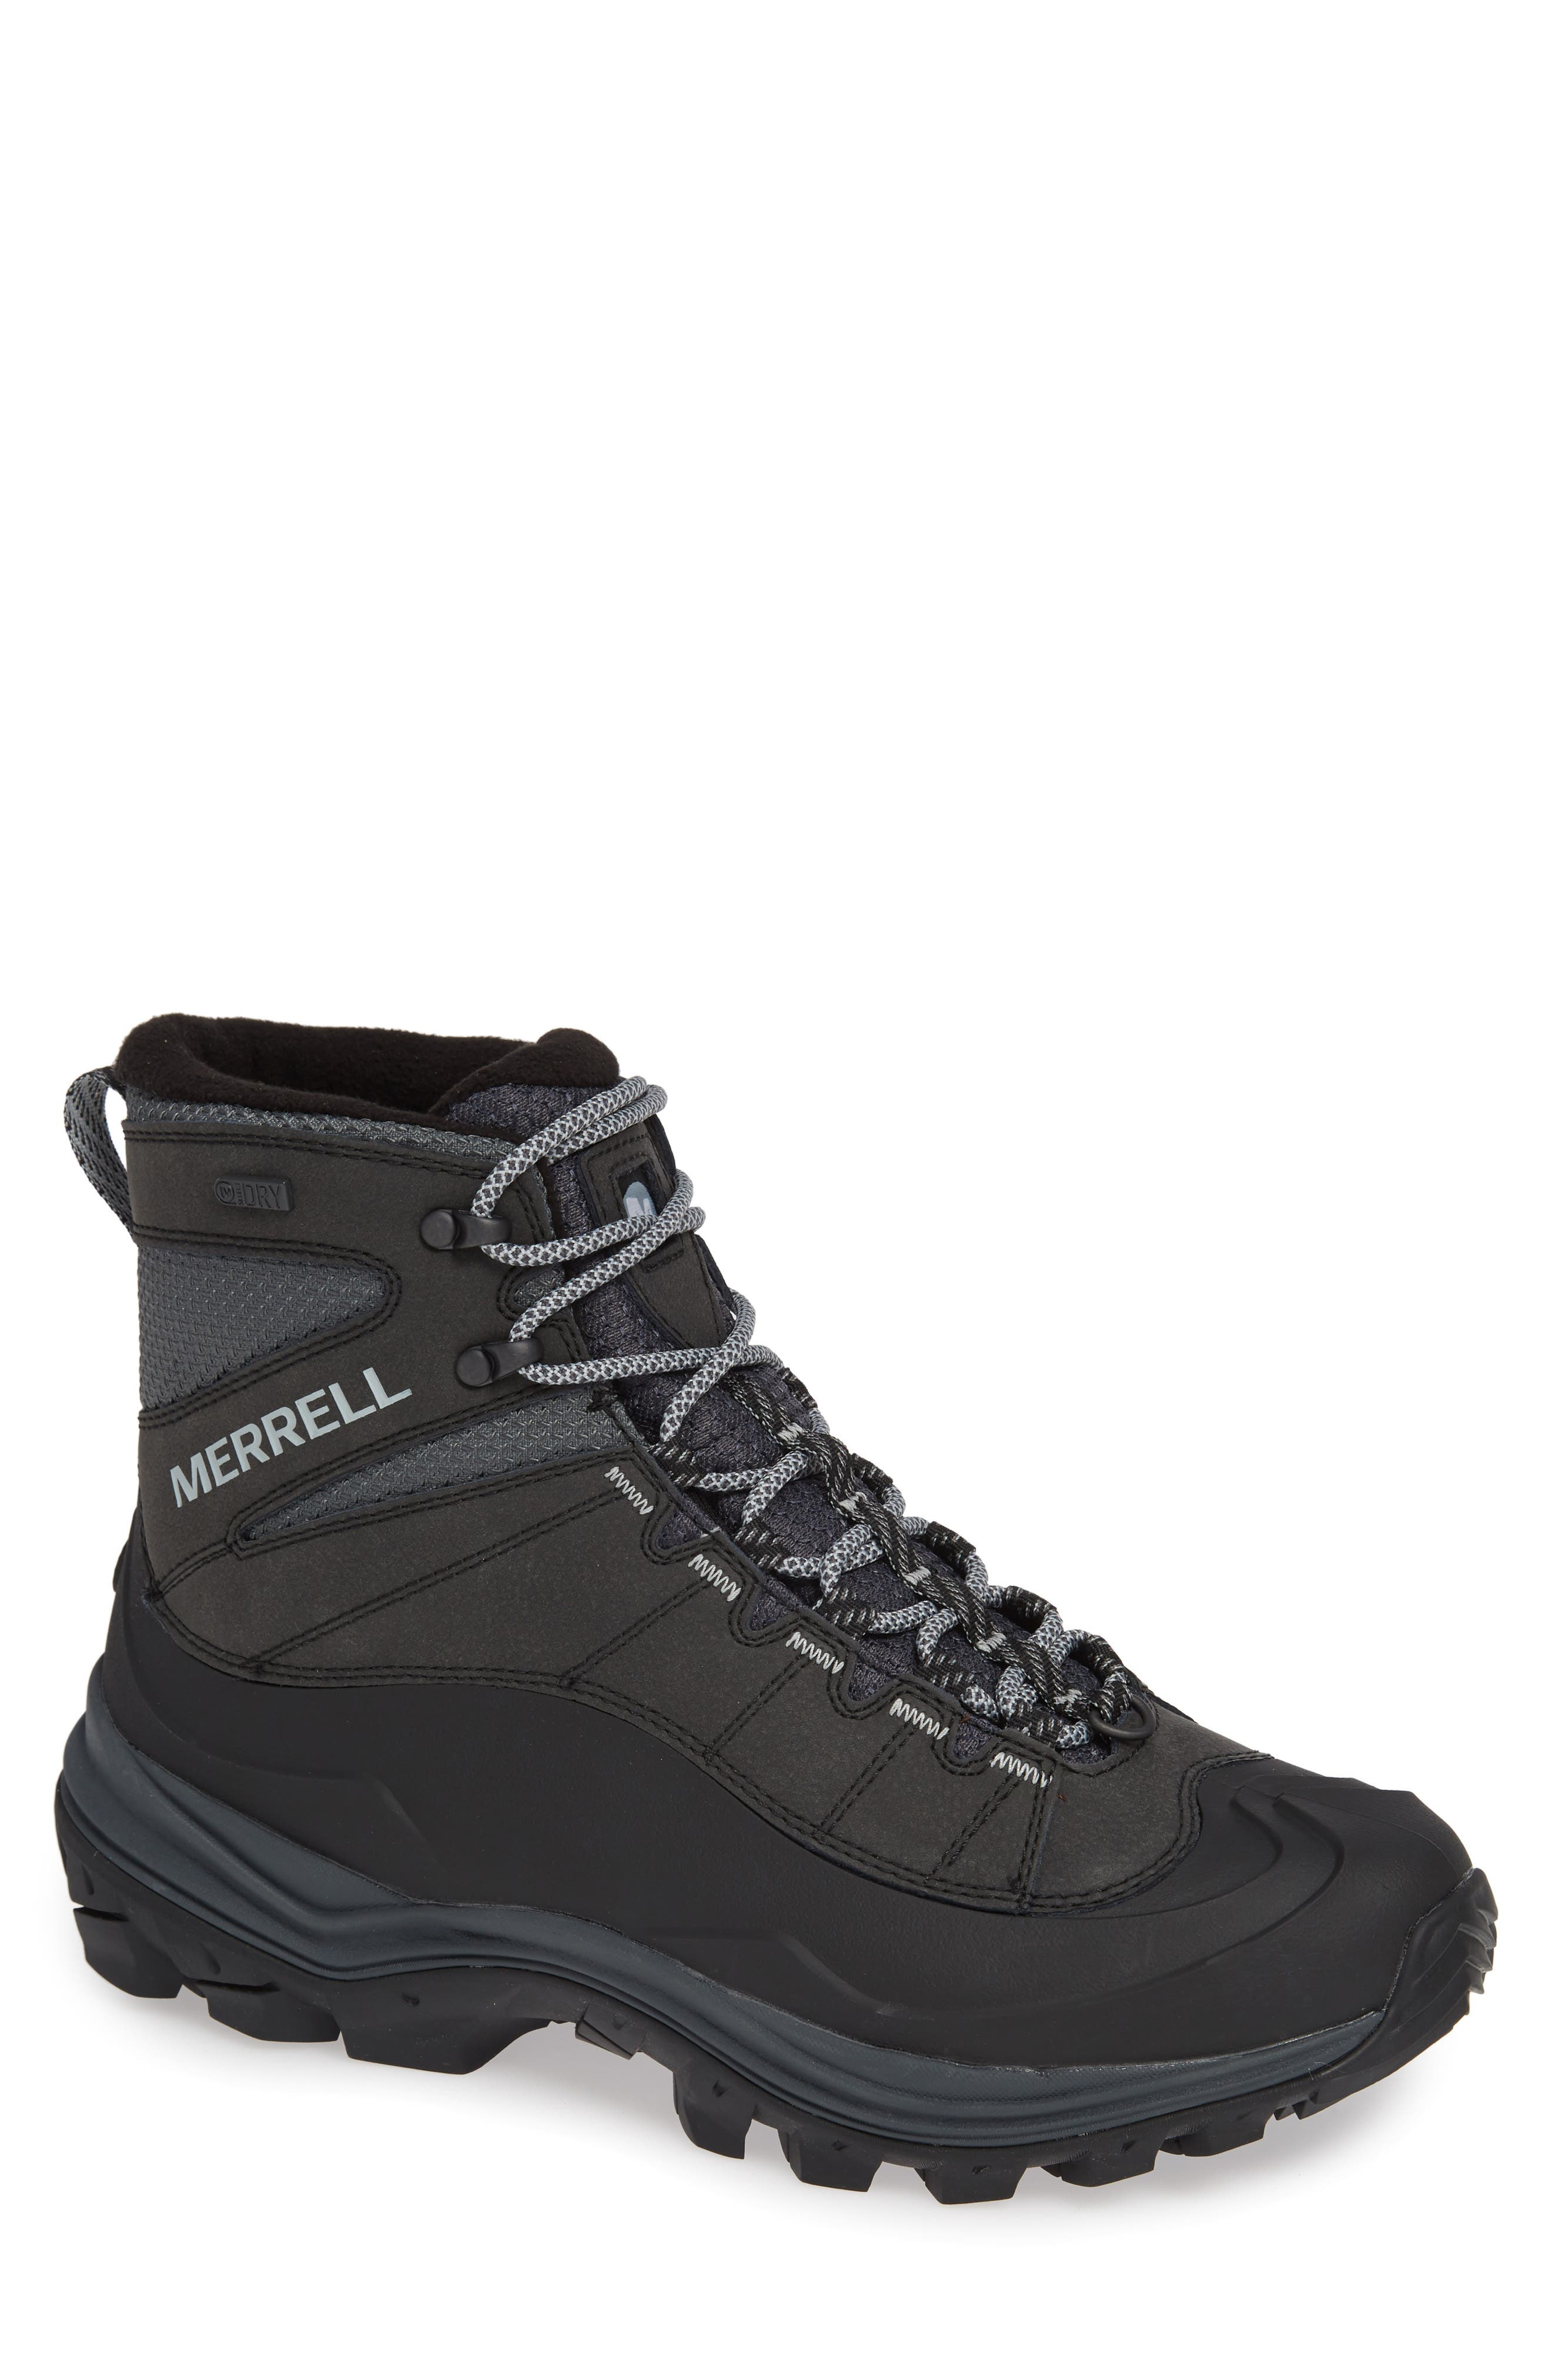 Thermo Chill Waterproof Snow Boot,                             Main thumbnail 1, color,                             001